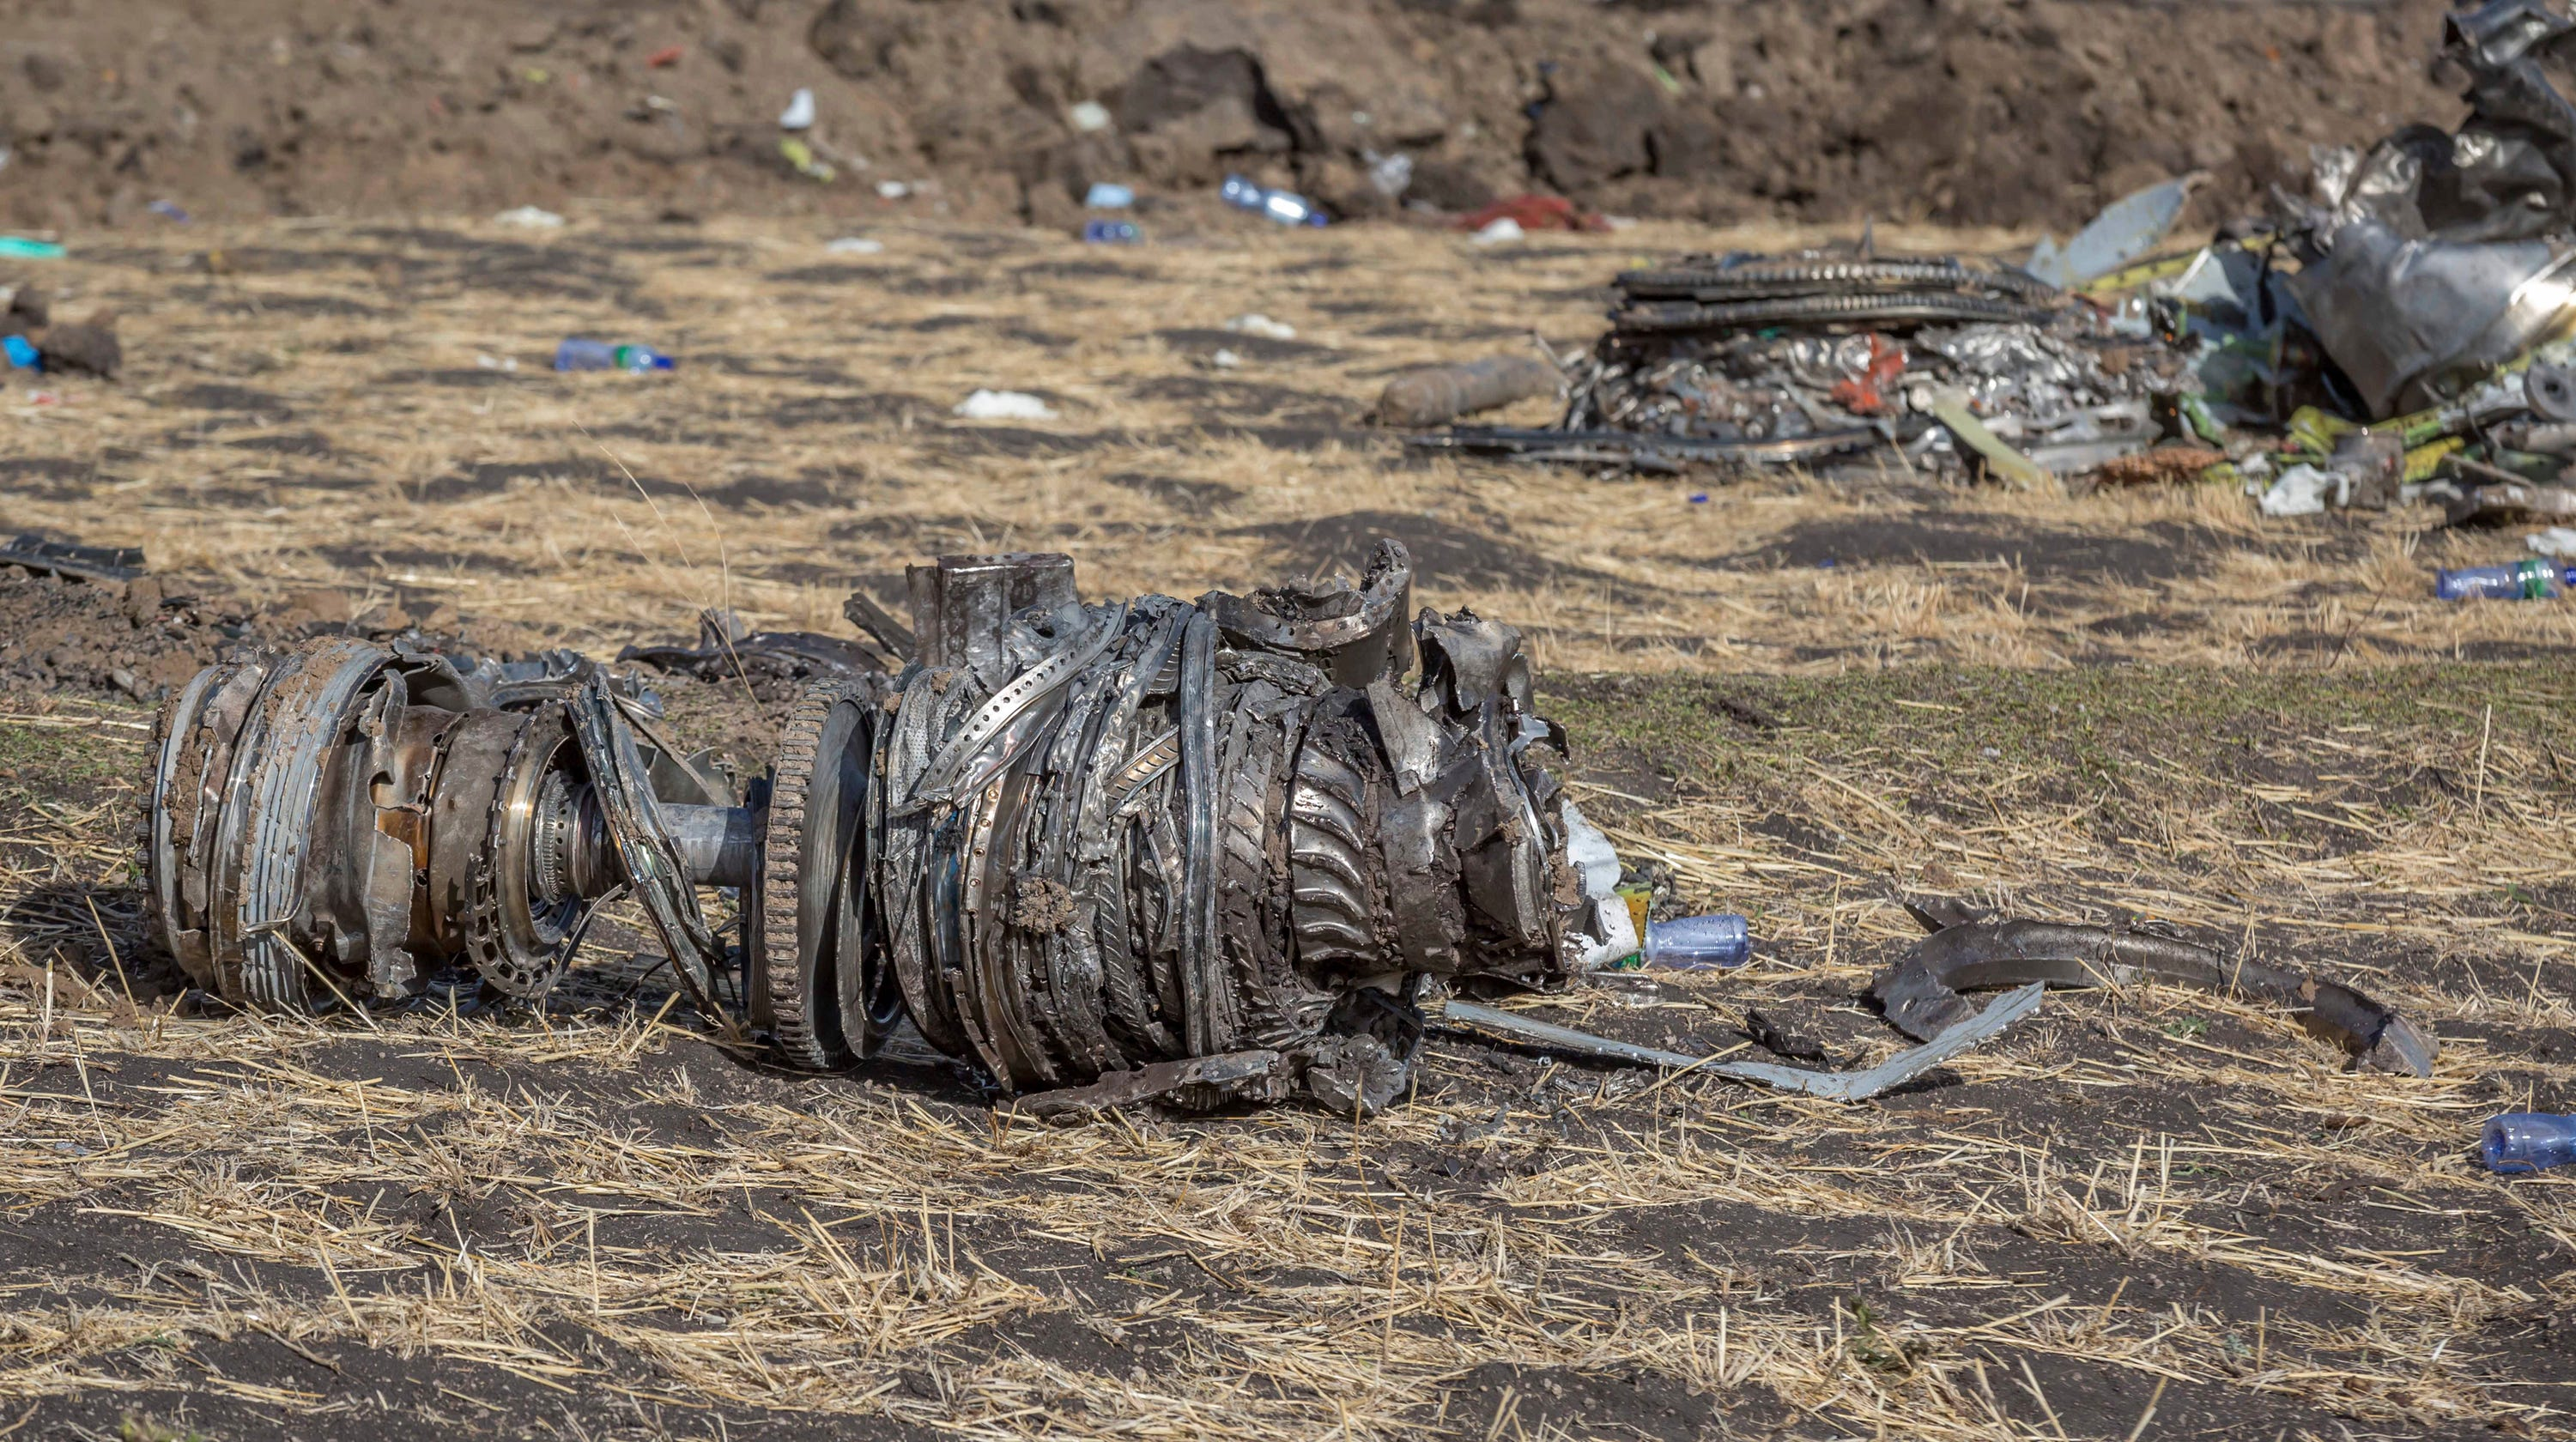 Ethiopian Boeing crash may be a warning against safety policies